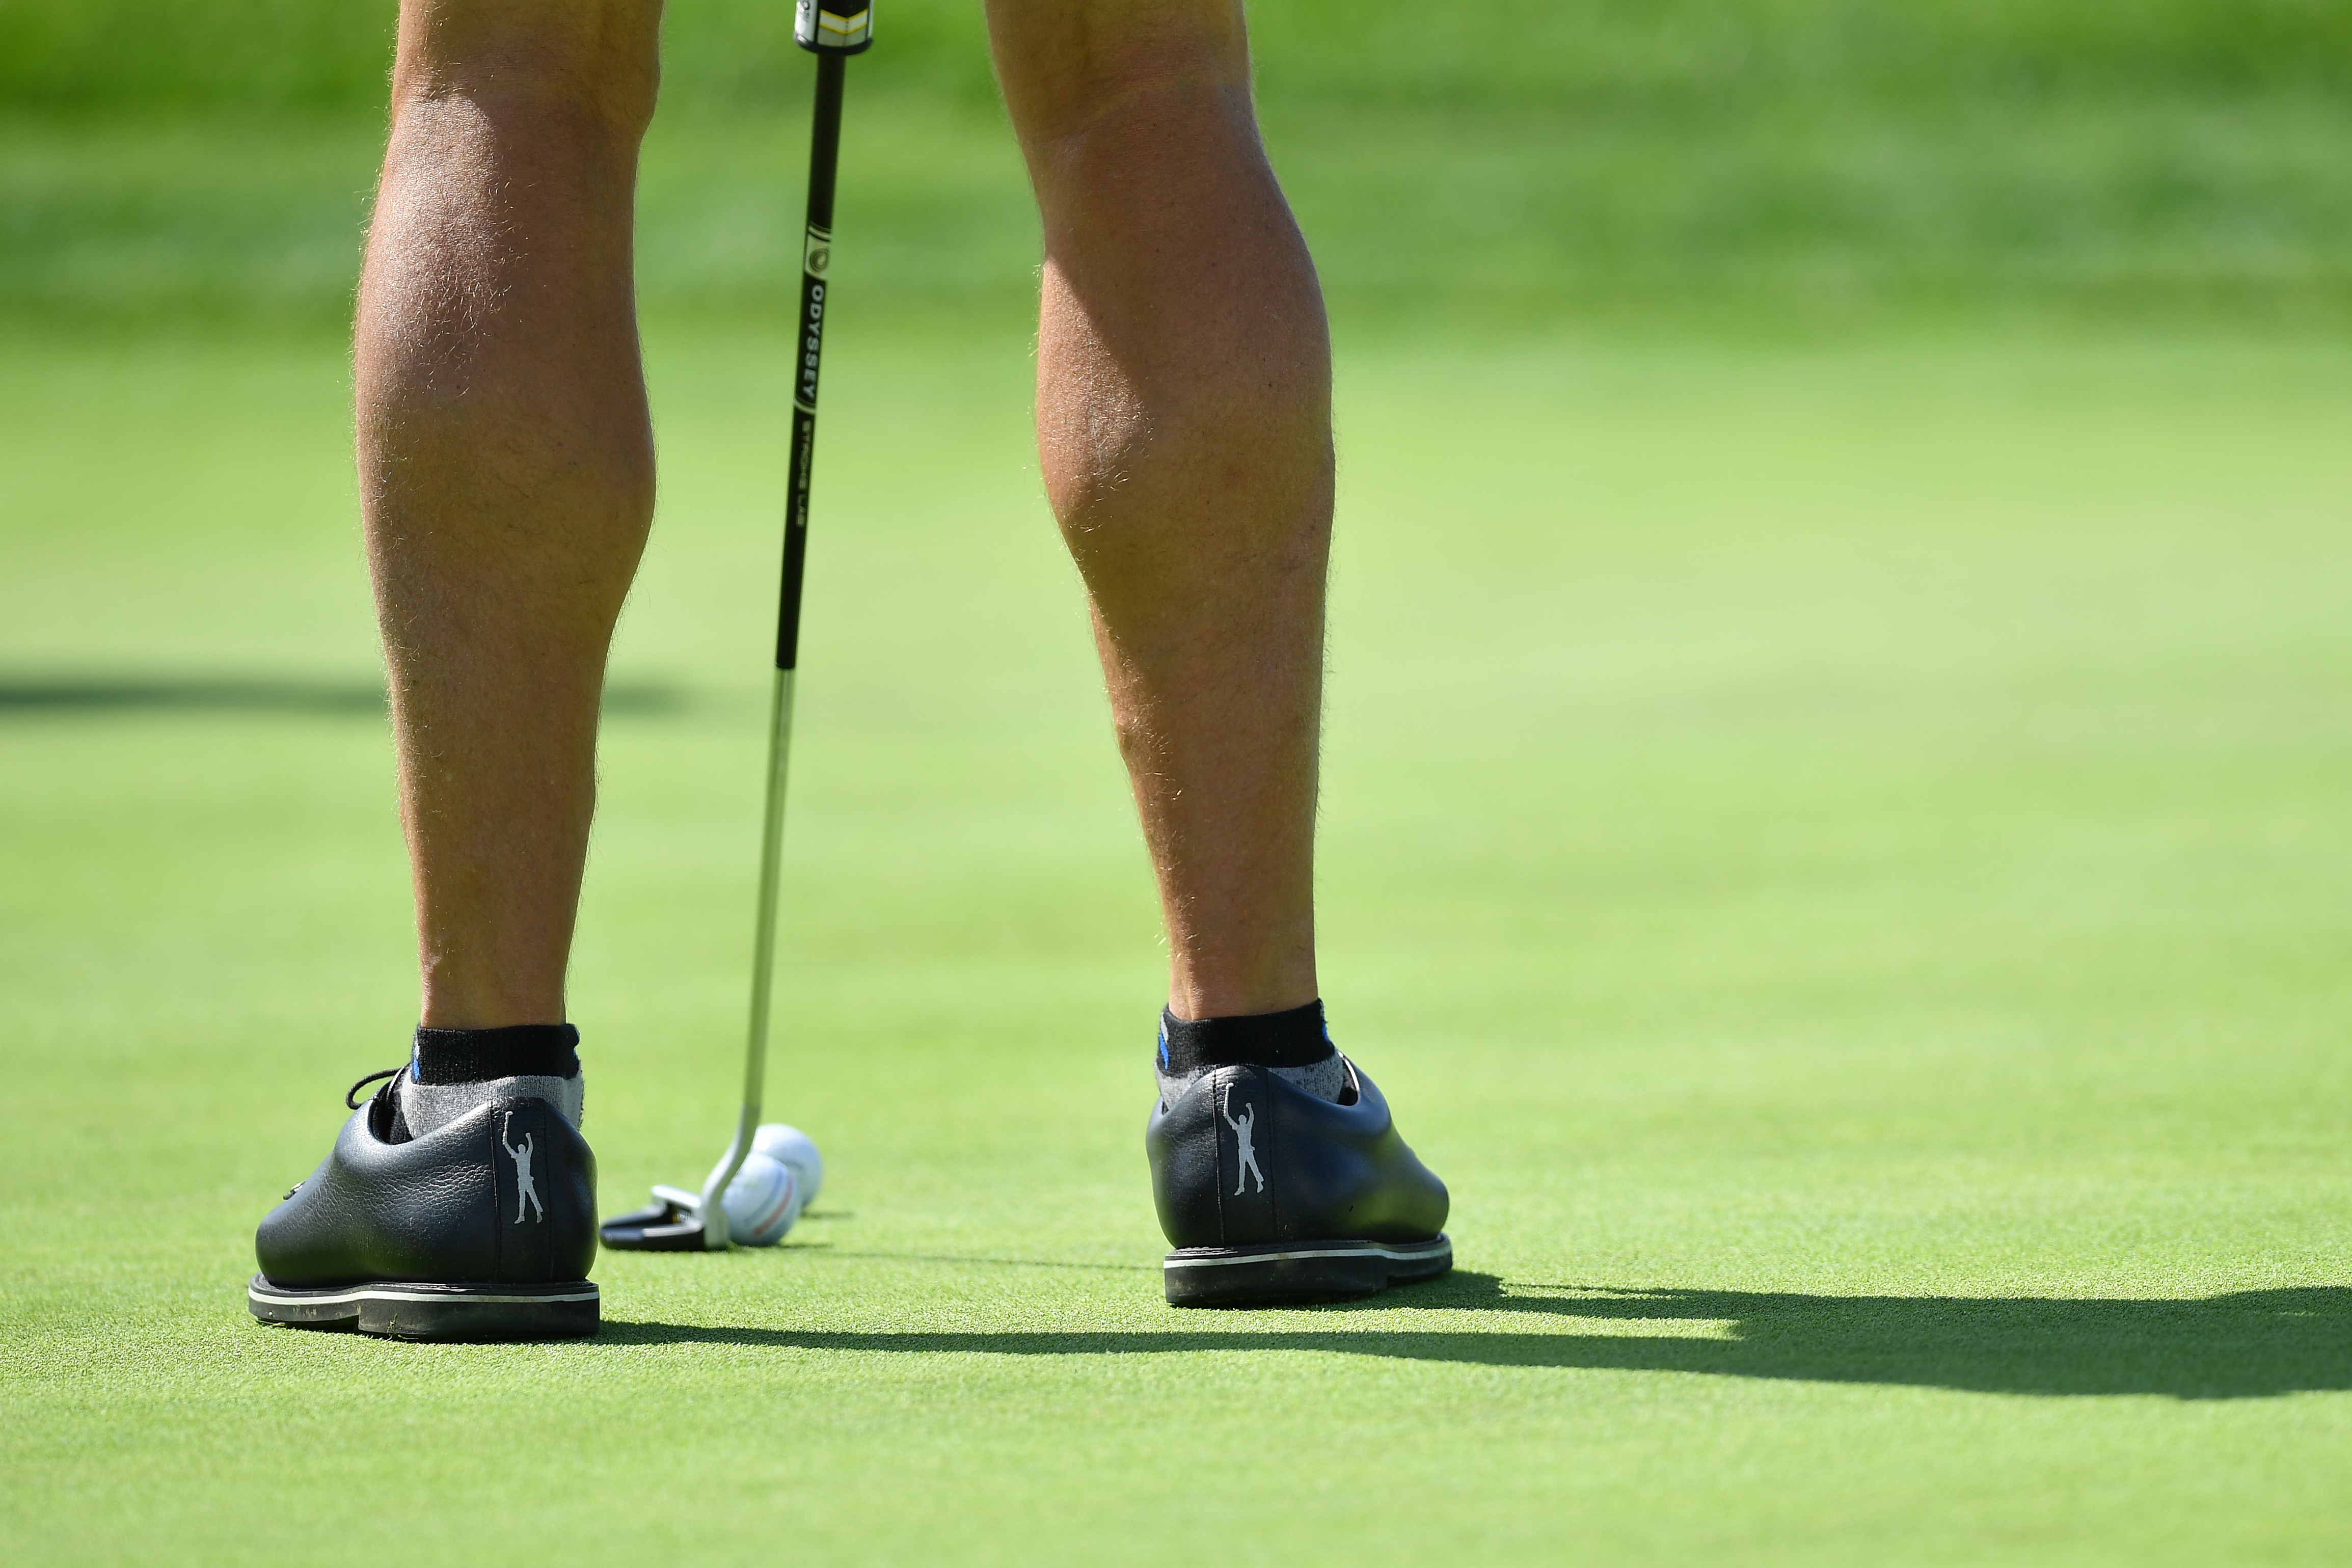 Phil Mickelson's calves